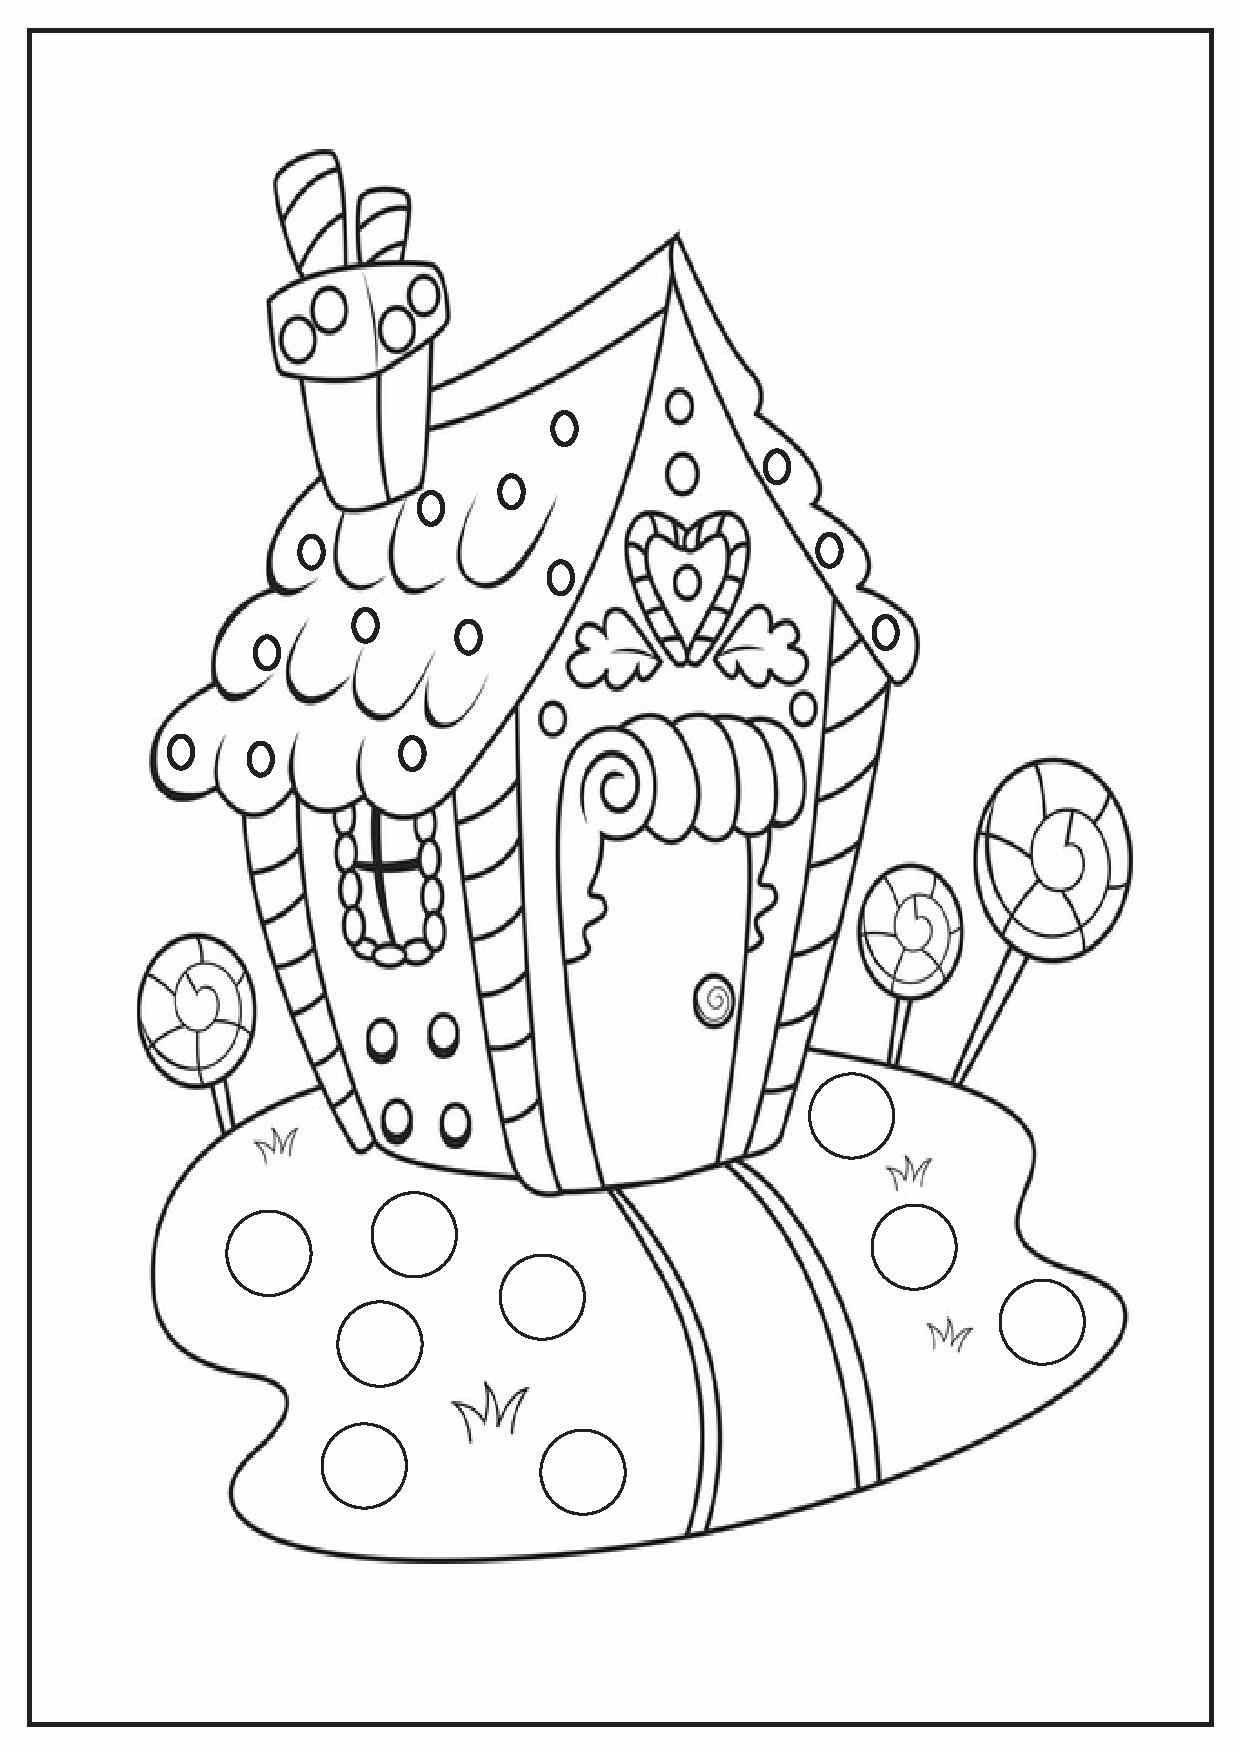 Kindergarten Coloring Sheets Christmas Coloring Sheets